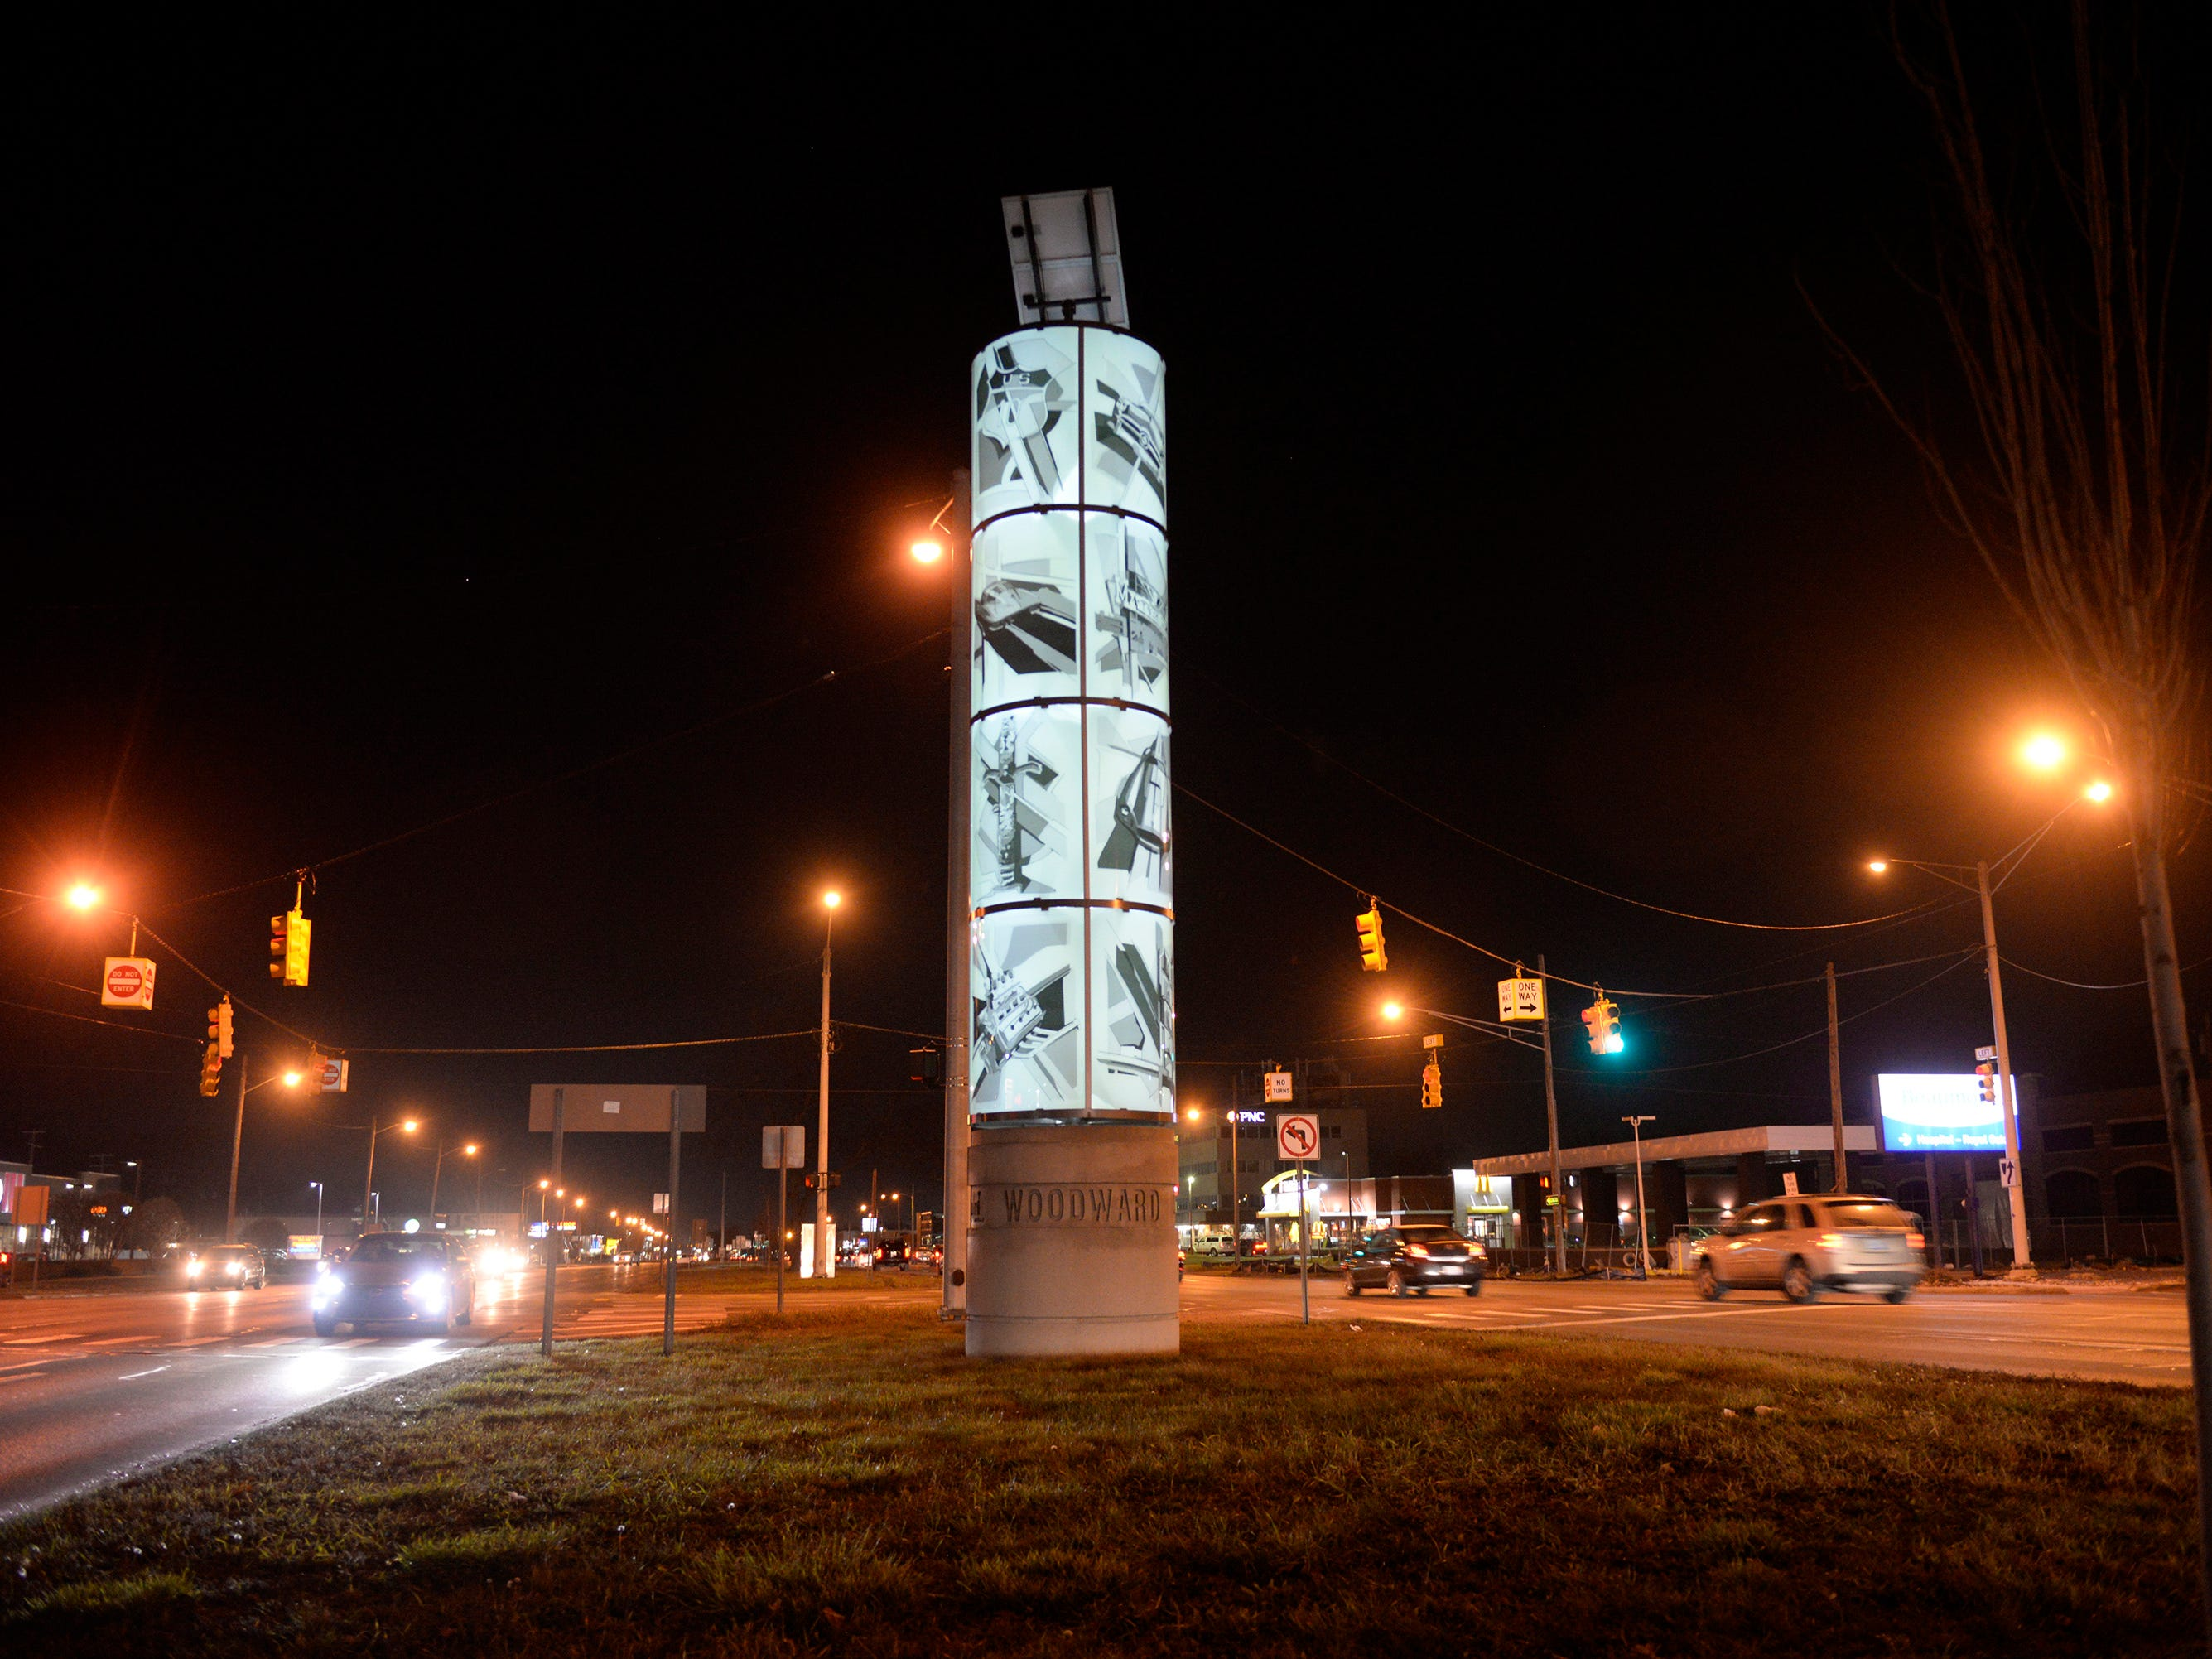 One of four Woodward Tribute statues in the median at Woodward and 13 Mile. The sculptures installed by Wooward Avenue Action Association help promote the corridor's history and culture.